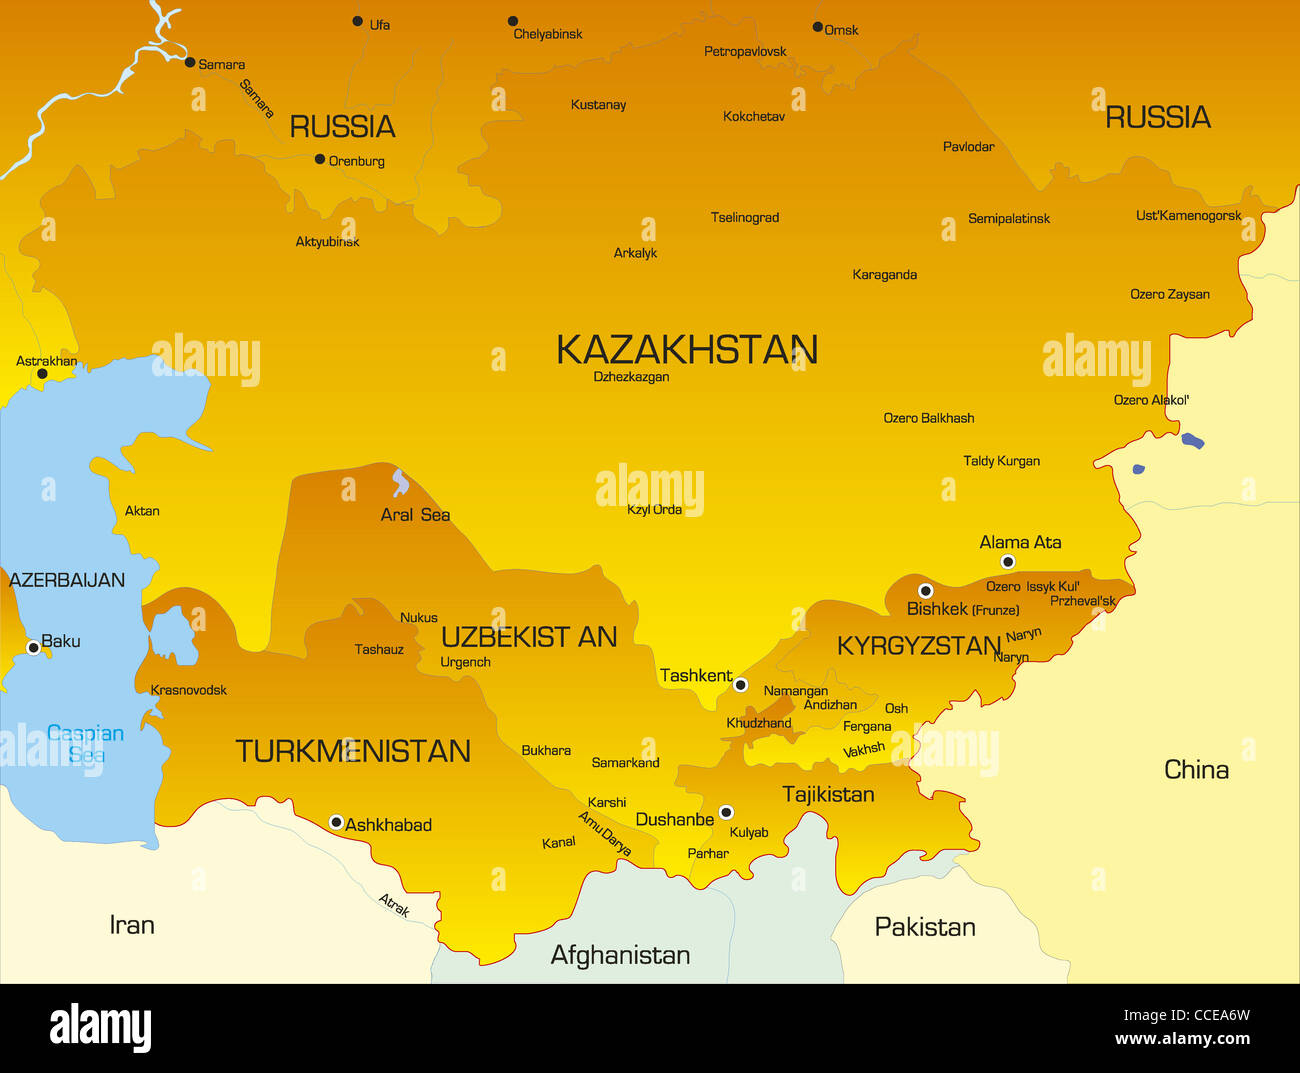 Vector color map of Central Asia countries - Stock Image